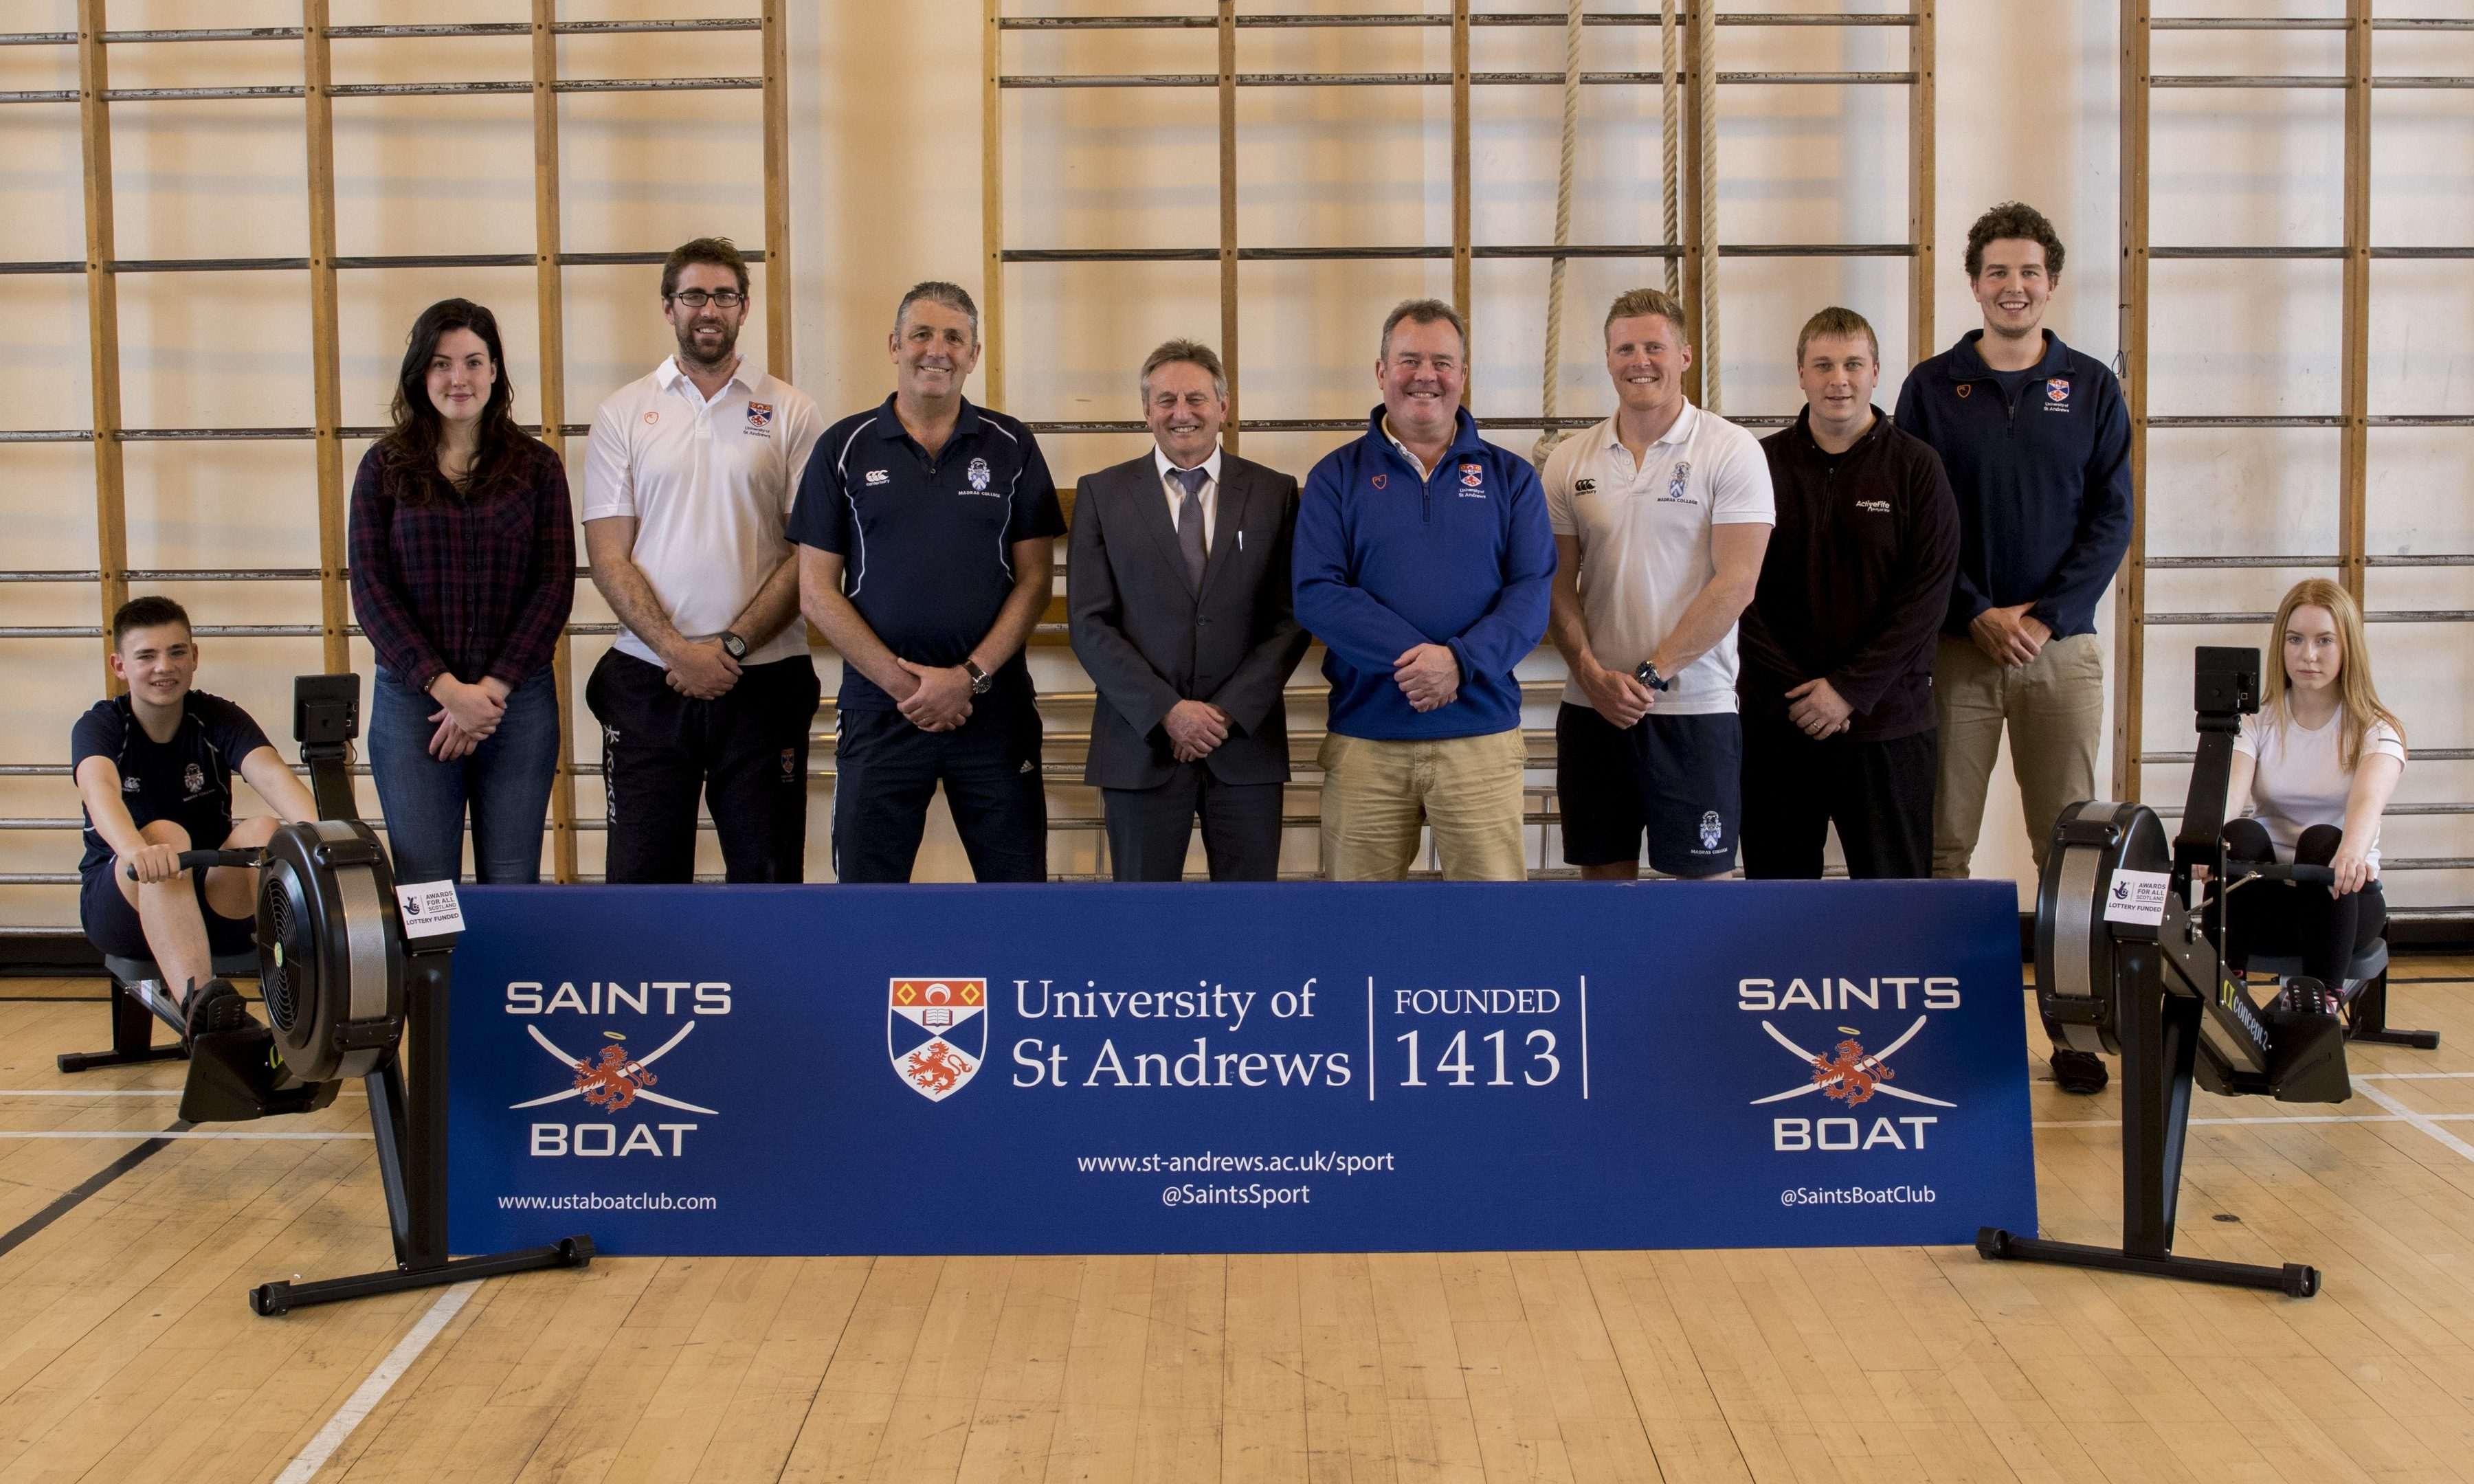 (L to R) Ben Smart (Madras), Charlotte Horsman (Saints Boat Club), Iain Rice (University of St Andrews Director of Rowing), Jim Tarvet (Principal Teacher of PE, Madras College), David McClure (Rector of Madras College), Stephen Stewart (University of St Andrews Director of Sport), Chris Martin (P.E. Teacher, Madras College), Michael Kavanagh (Sports Development Officer for Active Fife, Fife Council), Ed Woolgar (Saints Boat Club), Hannah Traill (Madras)